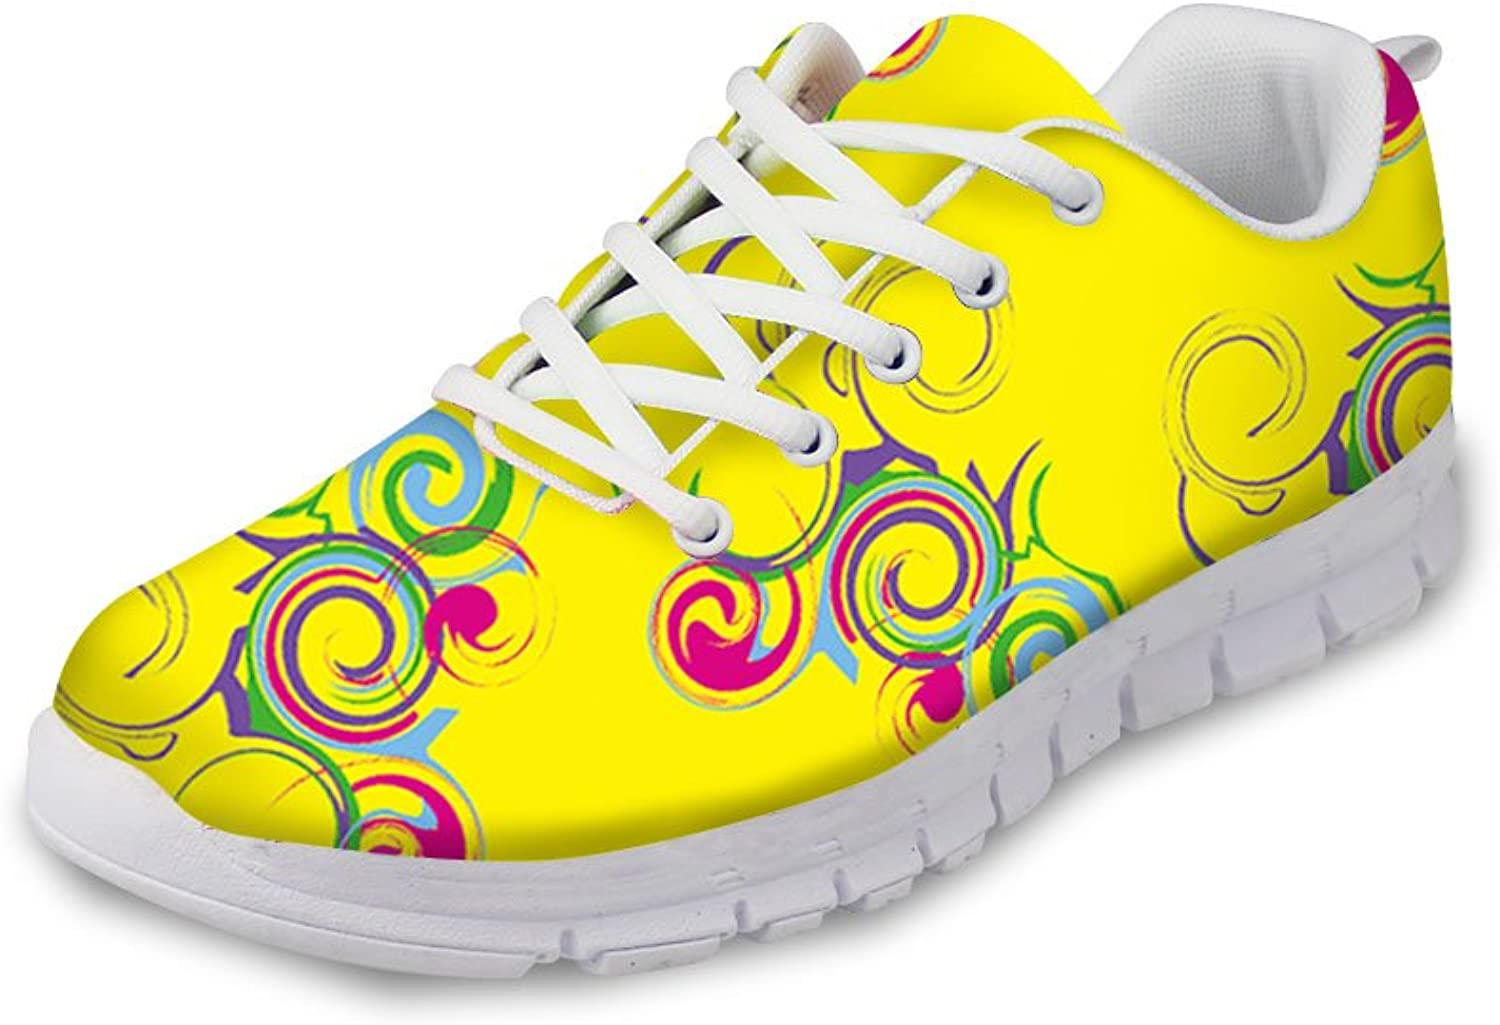 Yellow Womens Tennis shoes Stylish Pattern Design Sneakers Lightweight Running shoes